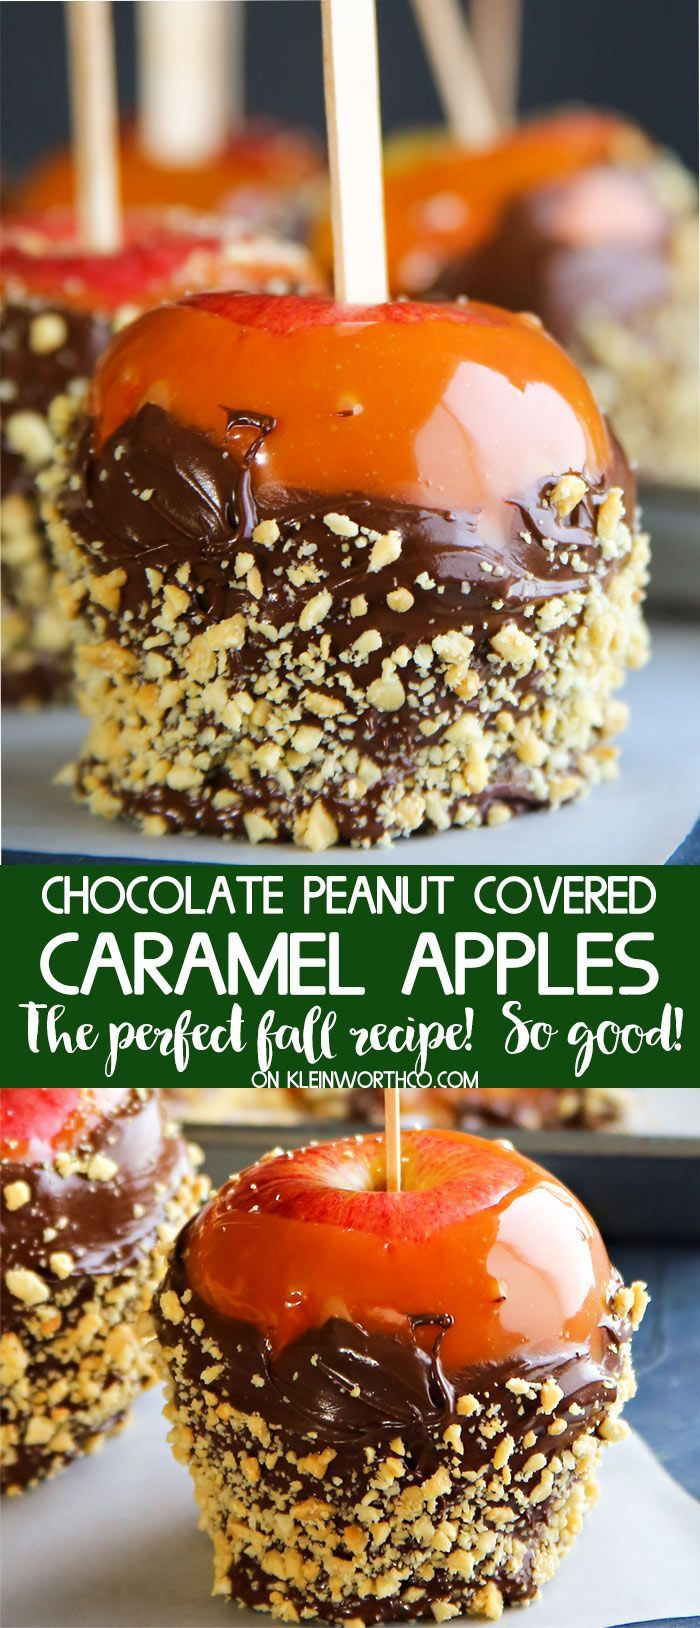 Chocolate Peanut Covered Caramel Apples with the best